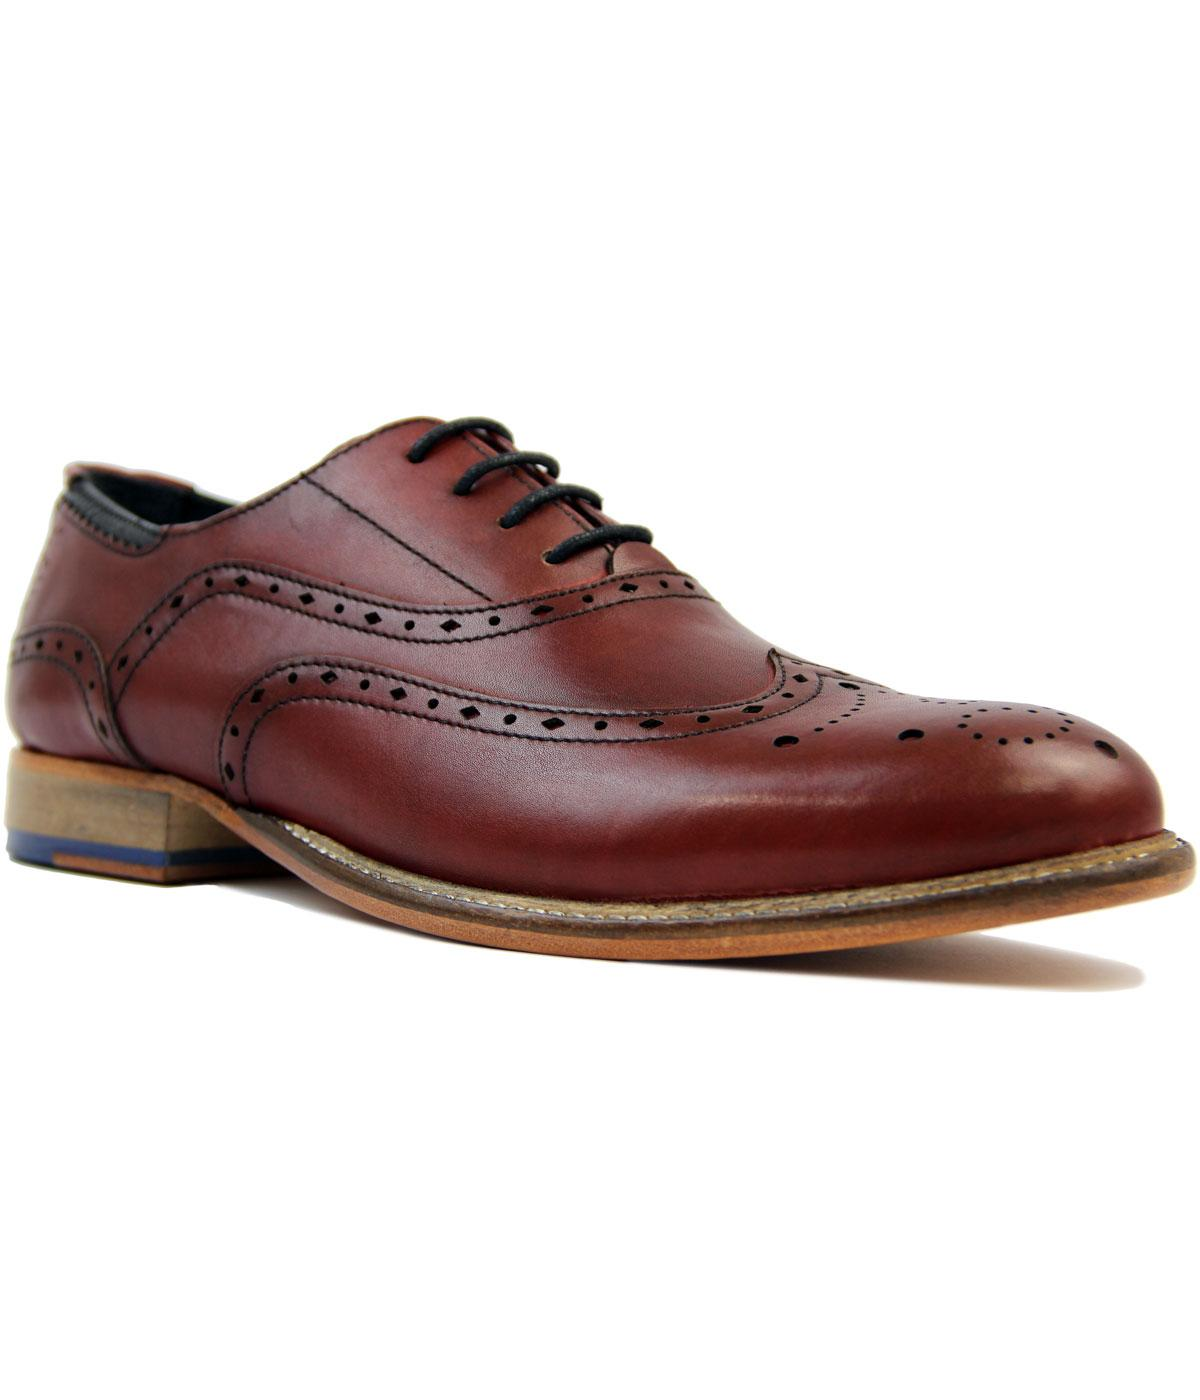 Brisbane GOODWIN SMITH Retro Mod Shortwing Brogues